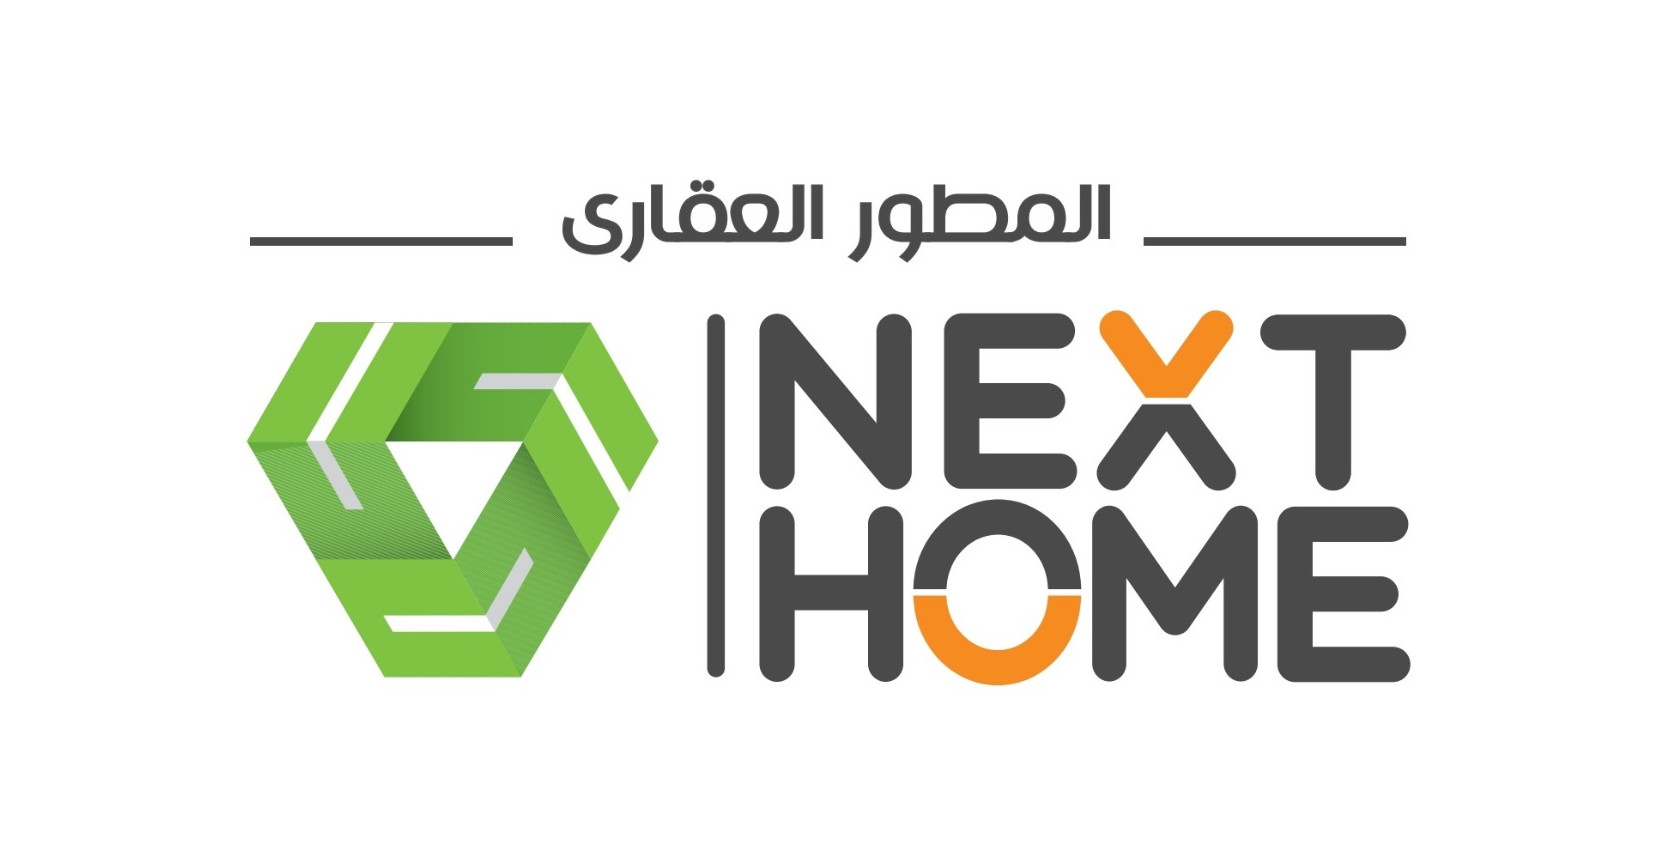 Job: Sales Admin - Real Estate at Next Home in Cairo, Egypt